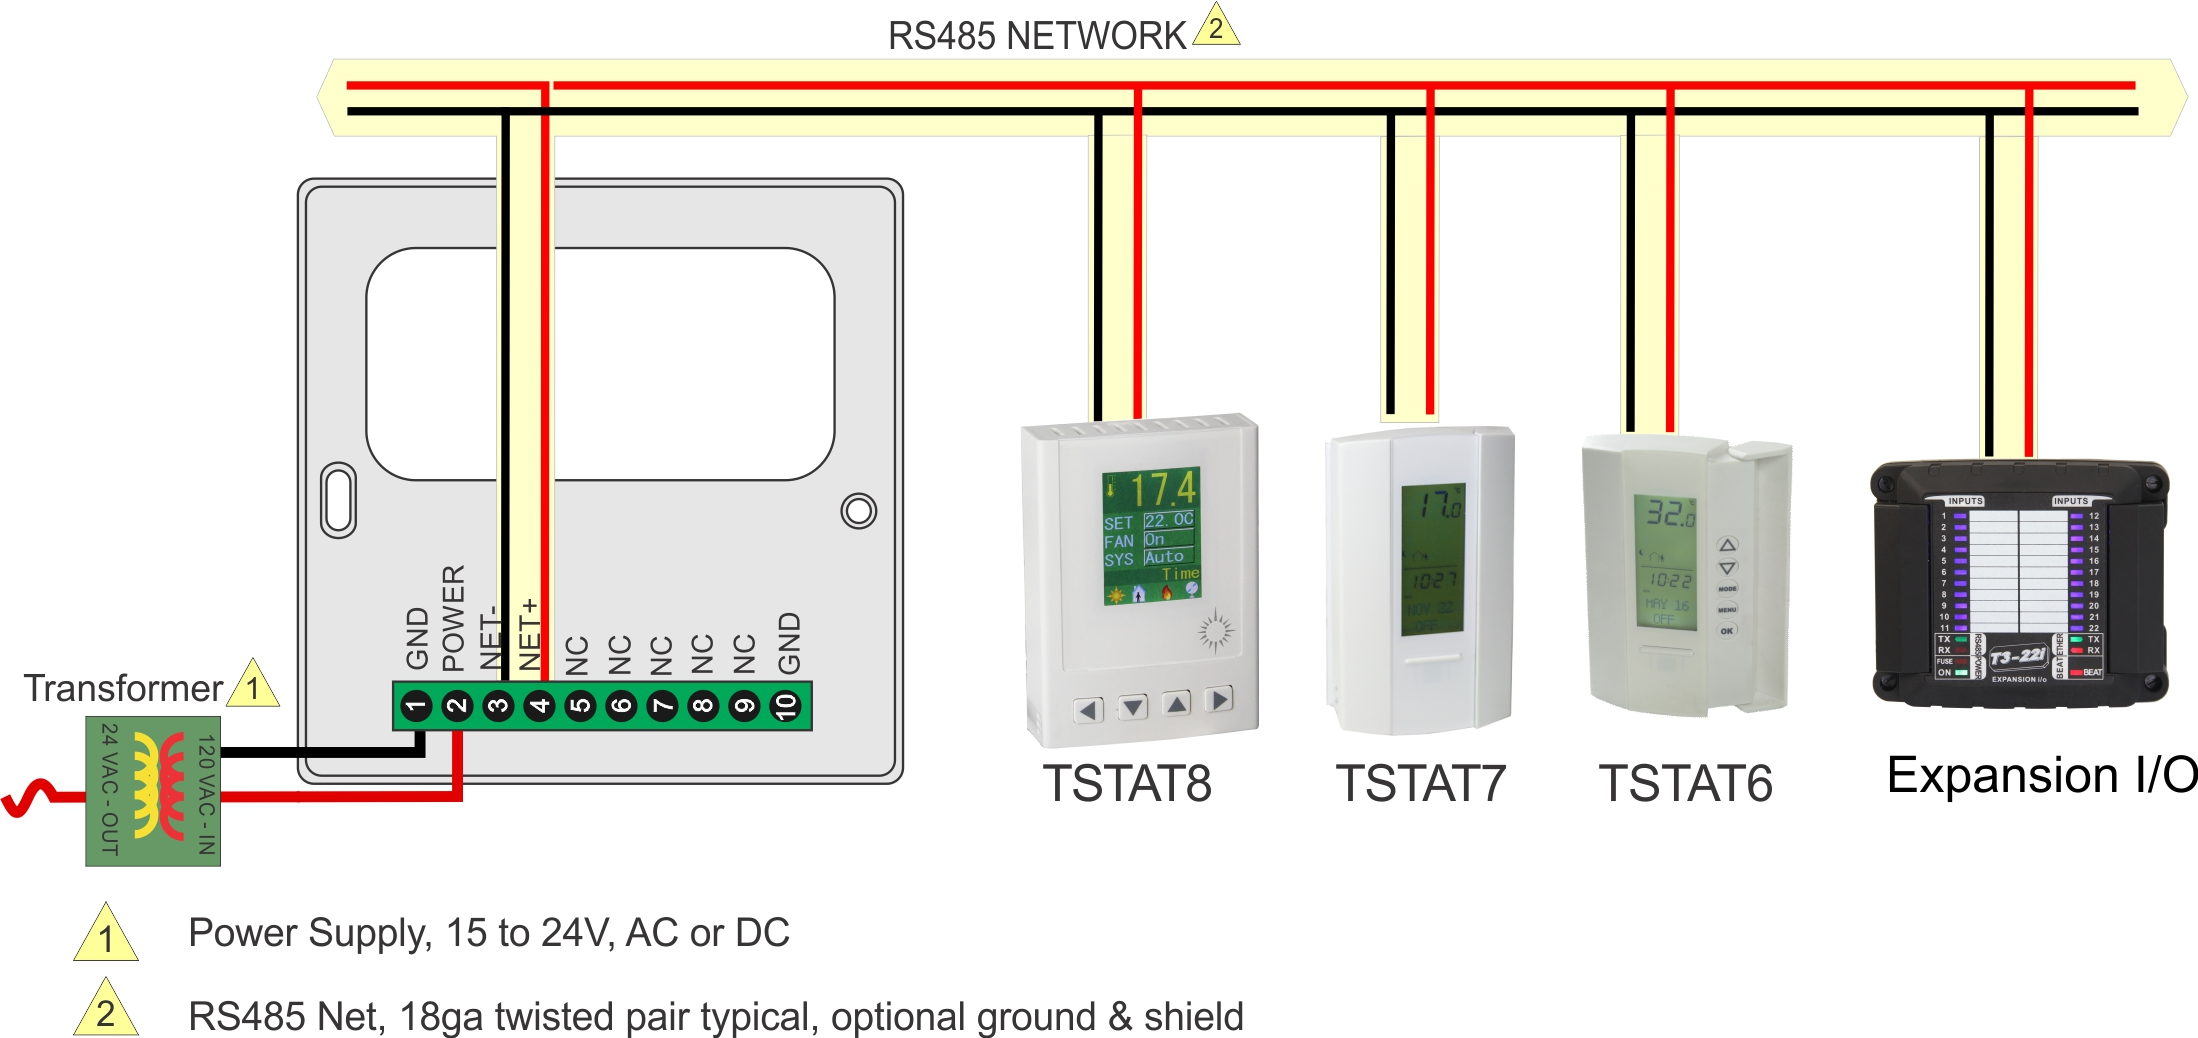 Bacnet Room Setpoint & Temp Display - vo Controls on modbus connection diagram, circuit board diagram, bacnet communication wiring, bacnet lighting diagram, ems controls diagram, bacnet wiring guide, bacnet network diagram, bacnet network mstp wiring,